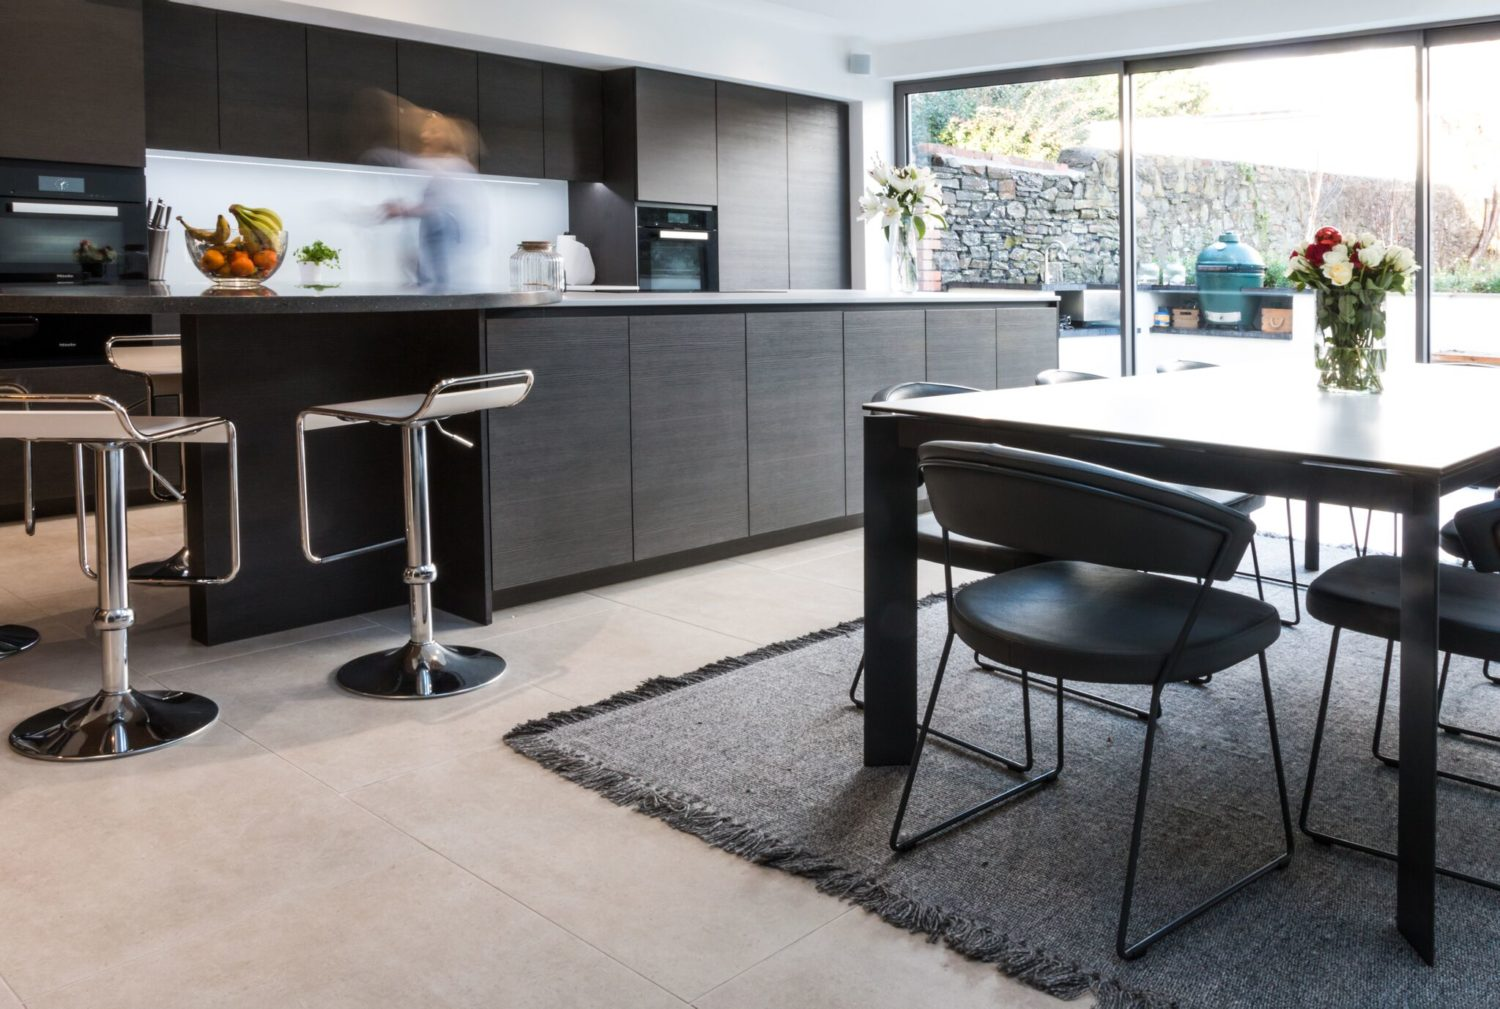 handle-less contemporary kitchen dining room with connubi table and chairs